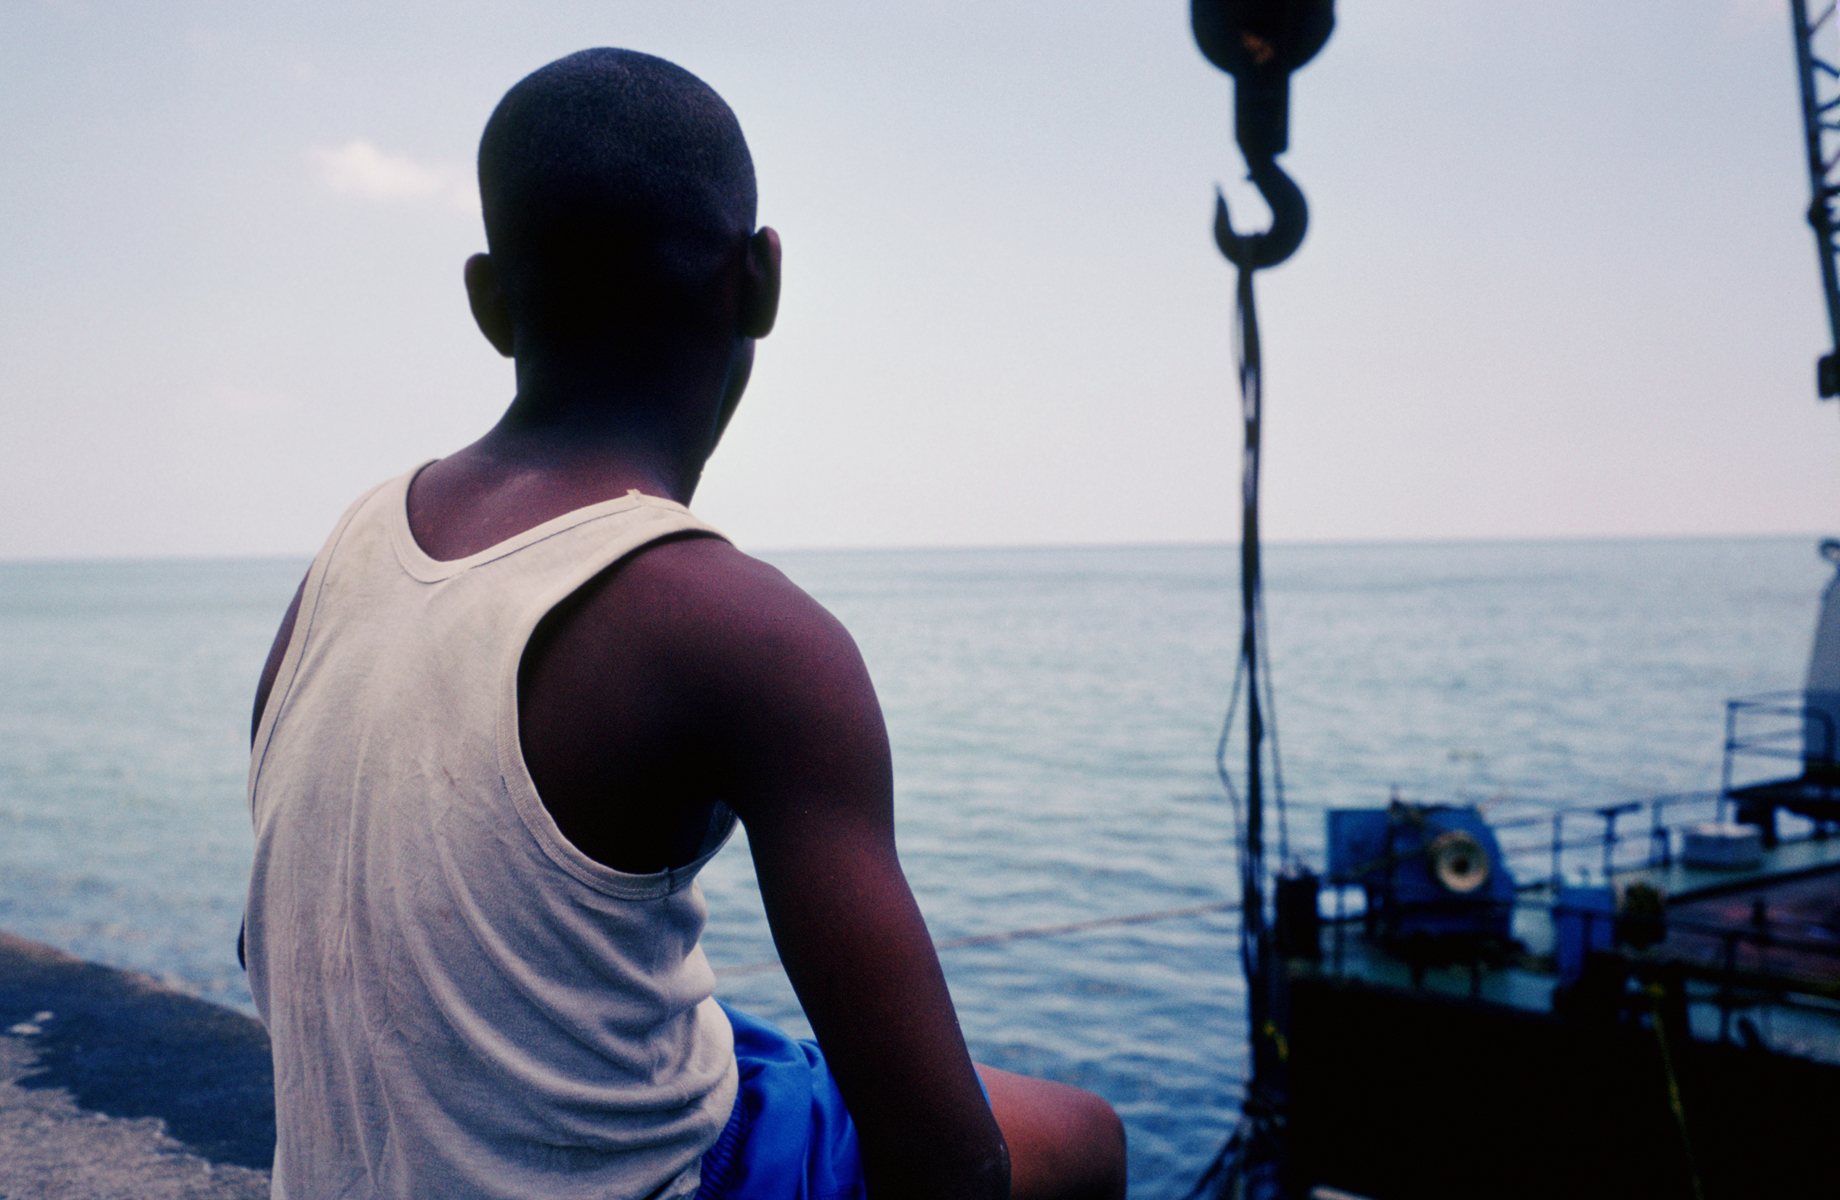 A boy sits on a ledge along the Malecon, watching men working and scuba diving from a barge. Havana, CUba